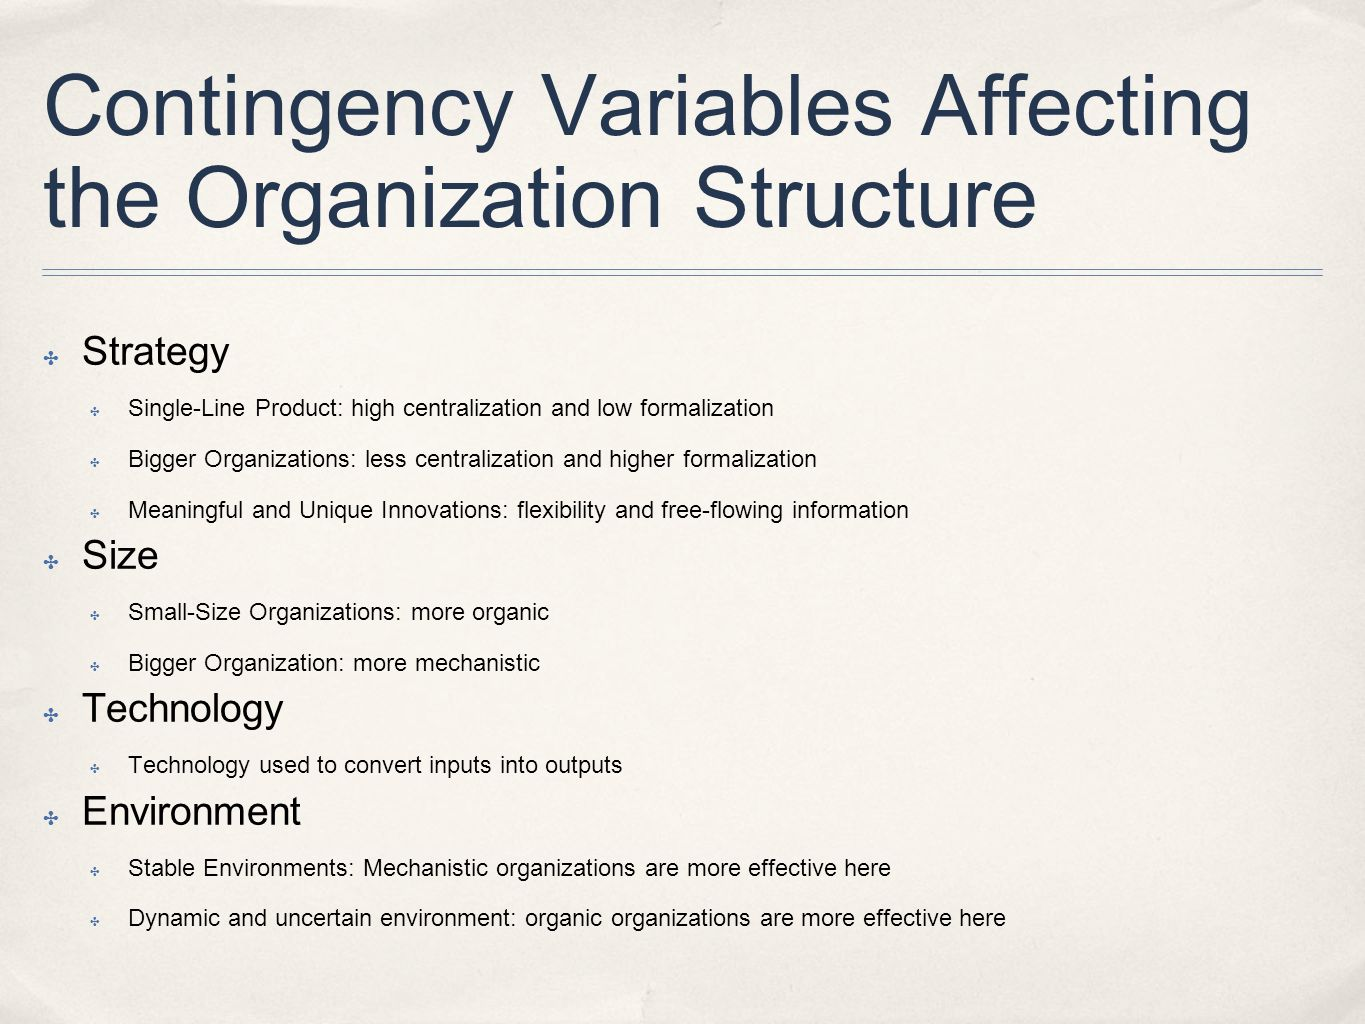 Contingency Variables Affecting the Organization Structure